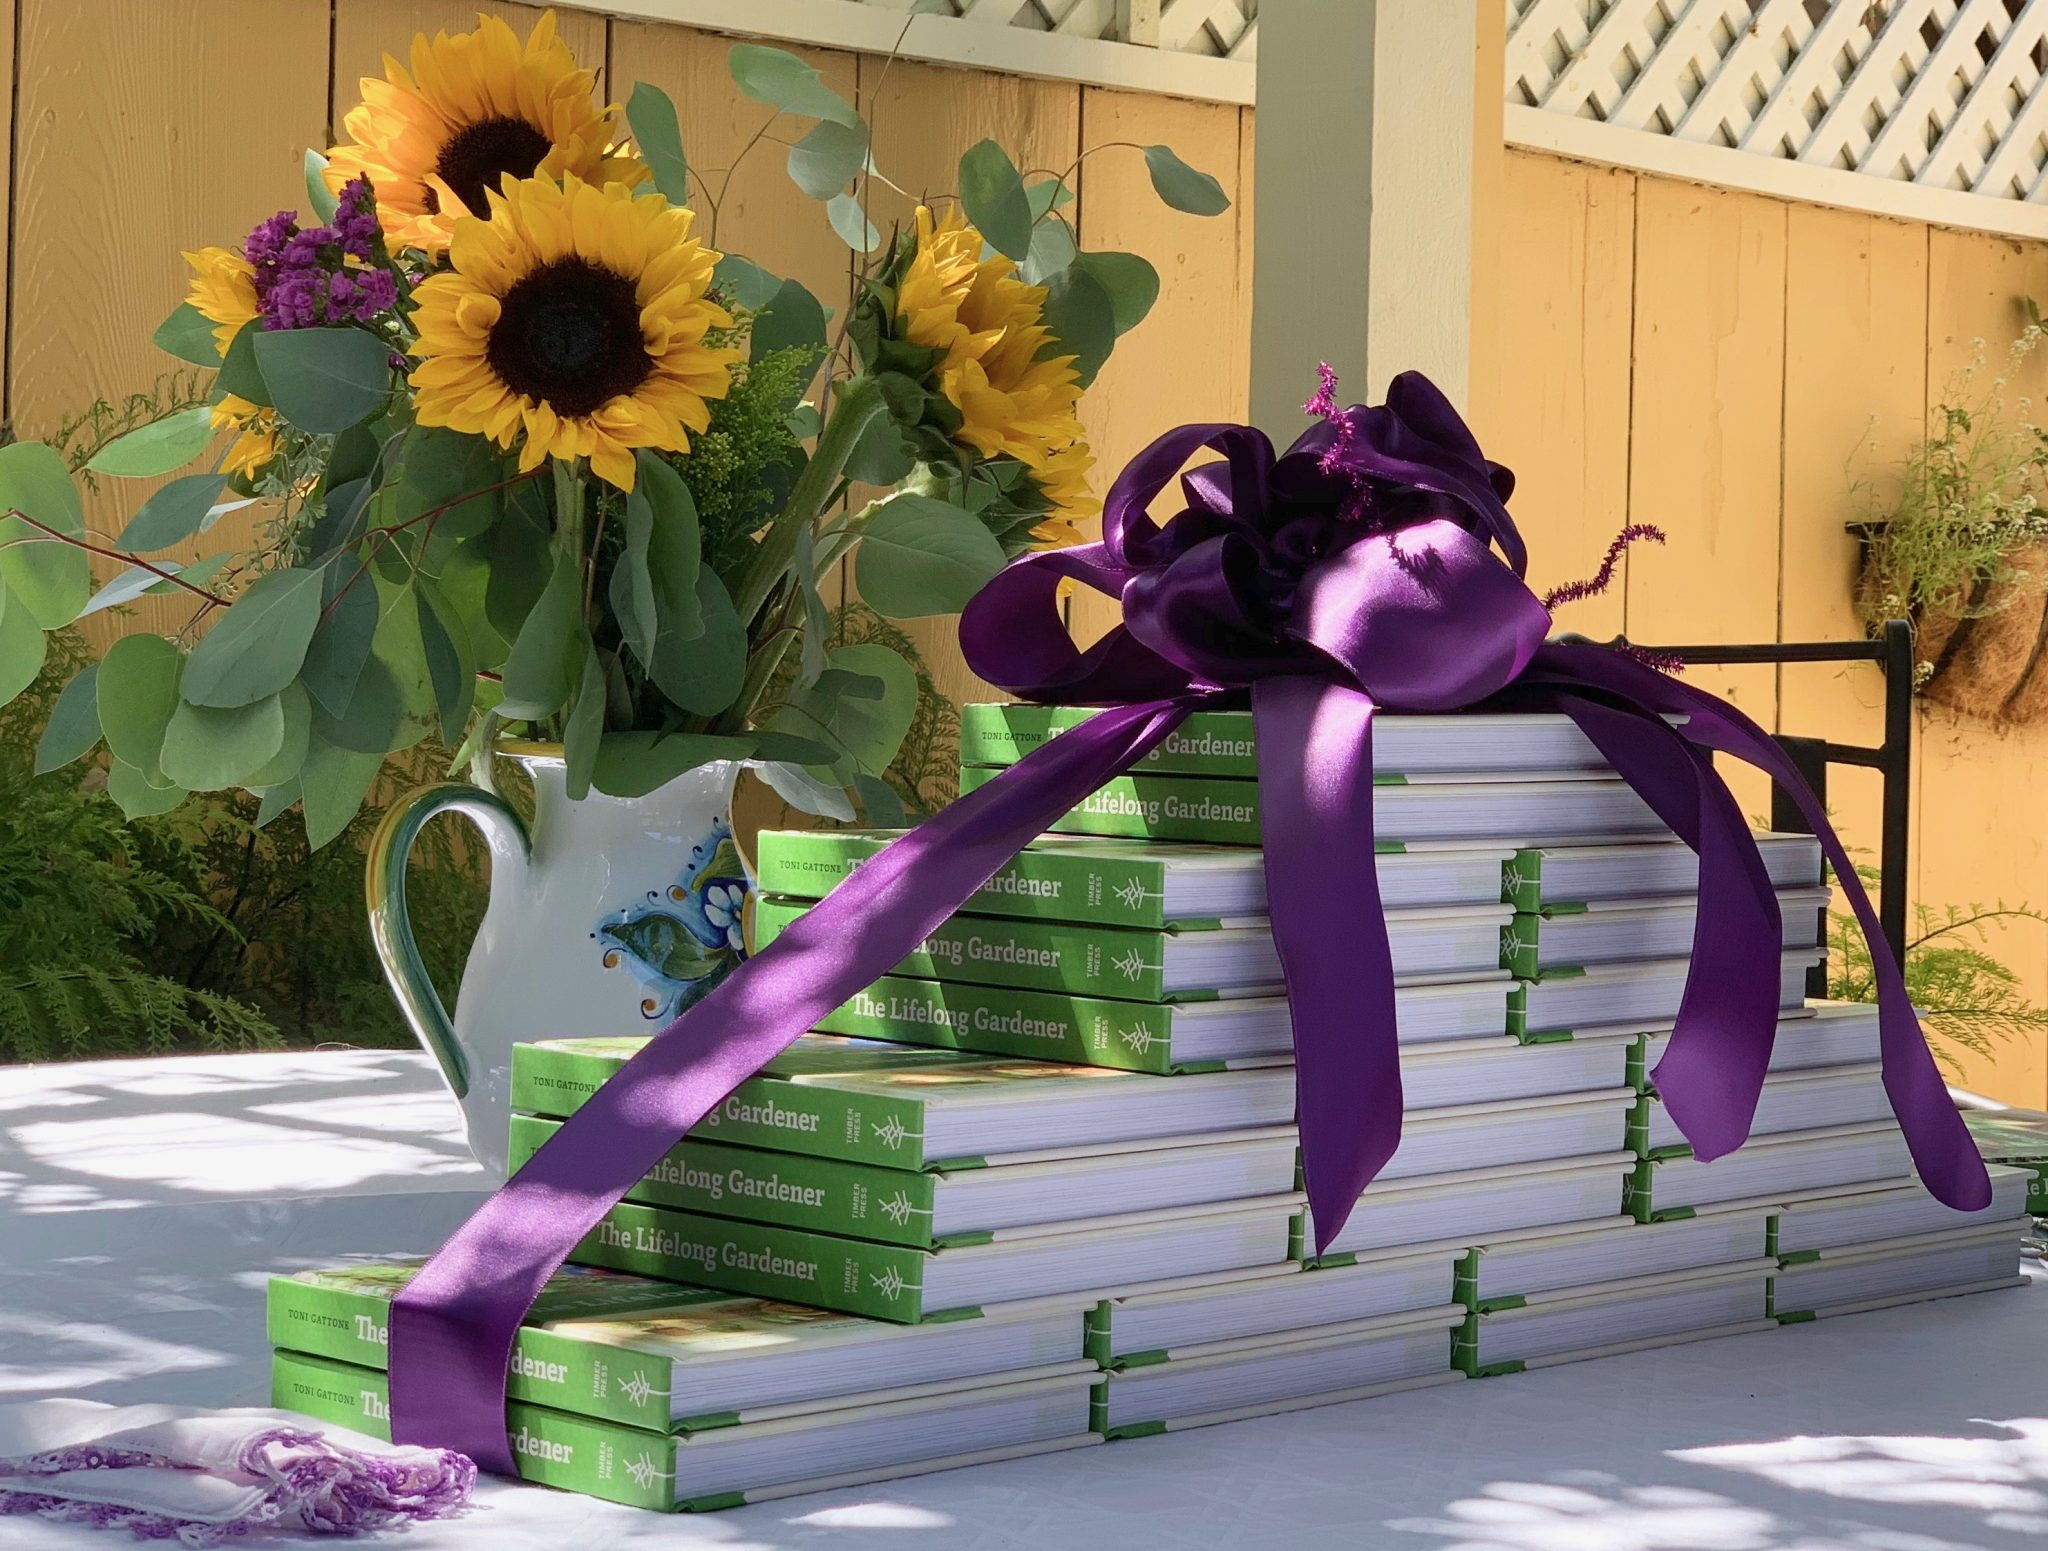 Sunflowers surround copies of The Lifelong Gardener at book release event with Toni Gattone